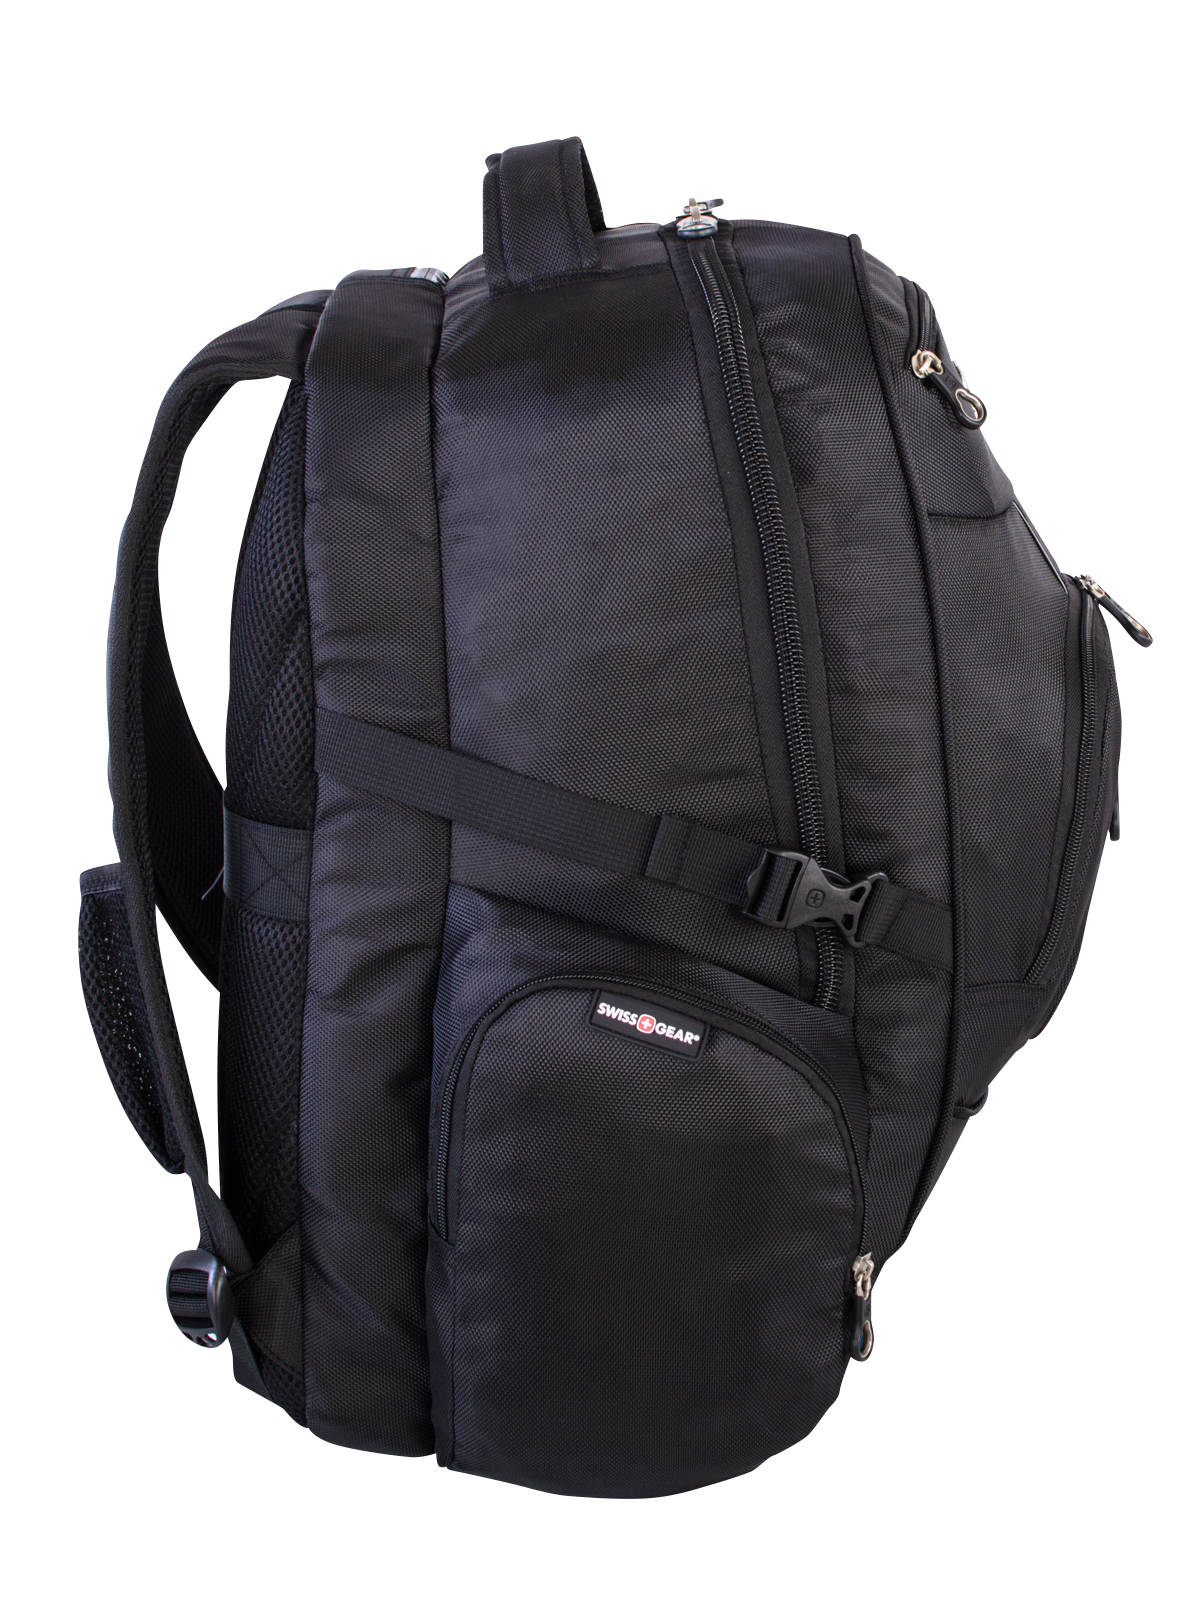 Swiss Gear Backpack Fits 17 3 Quot Laptop Holiday